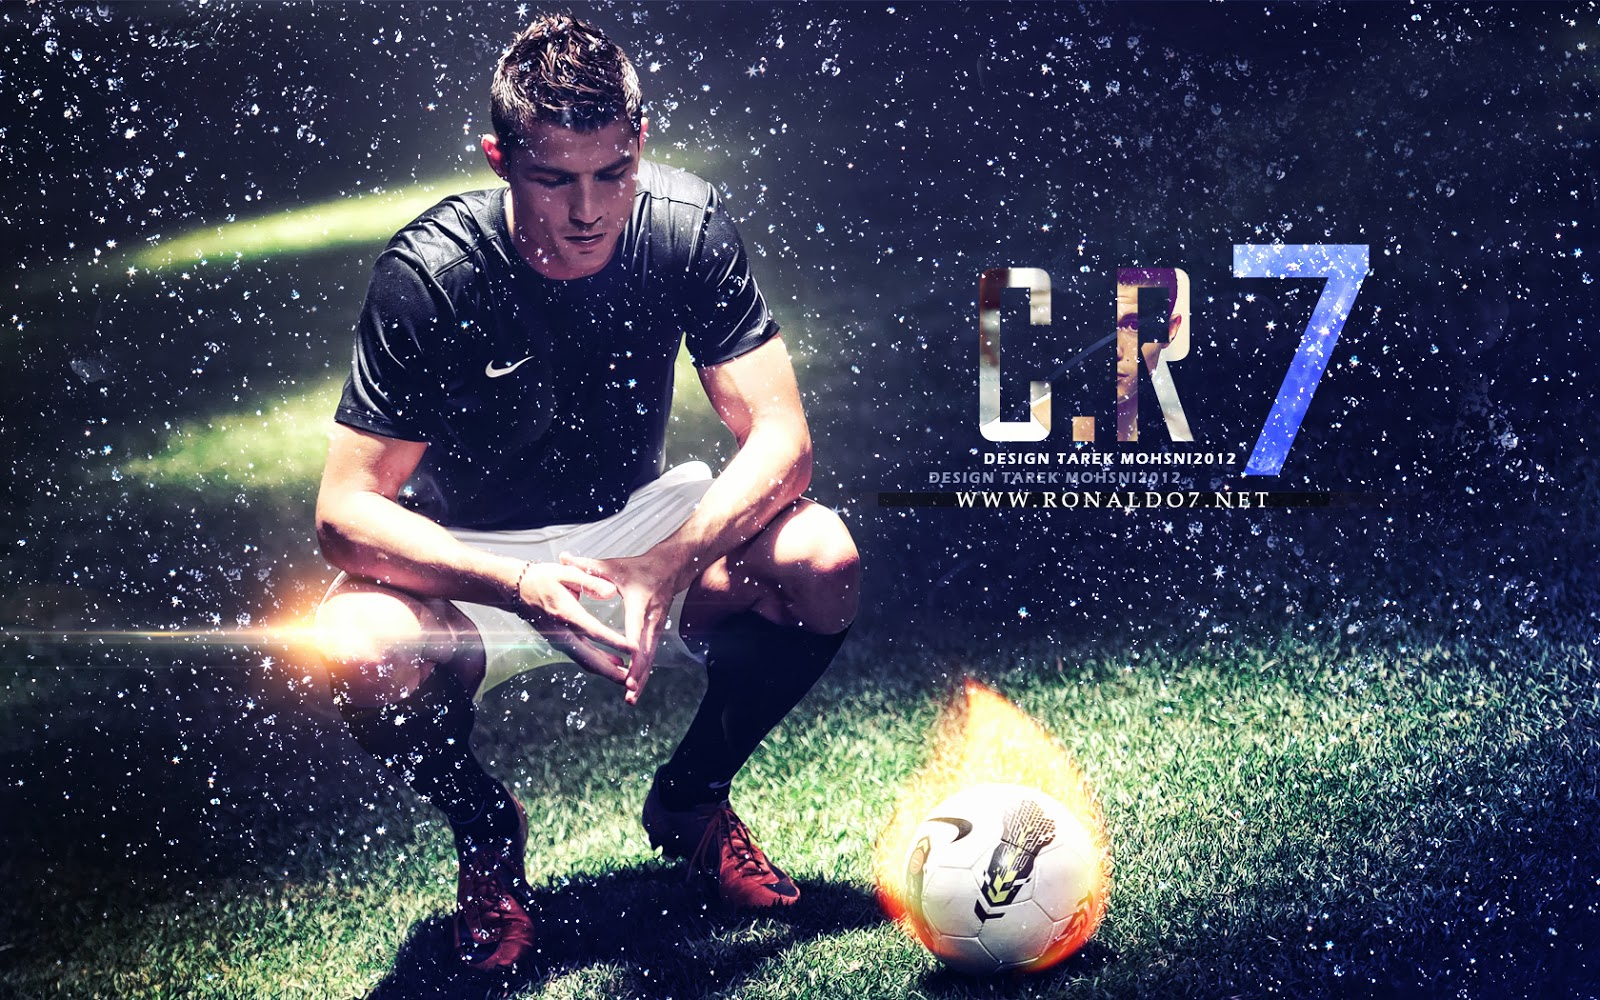 cristiano ronaldo wallpaper 1080p - wallpapersafari